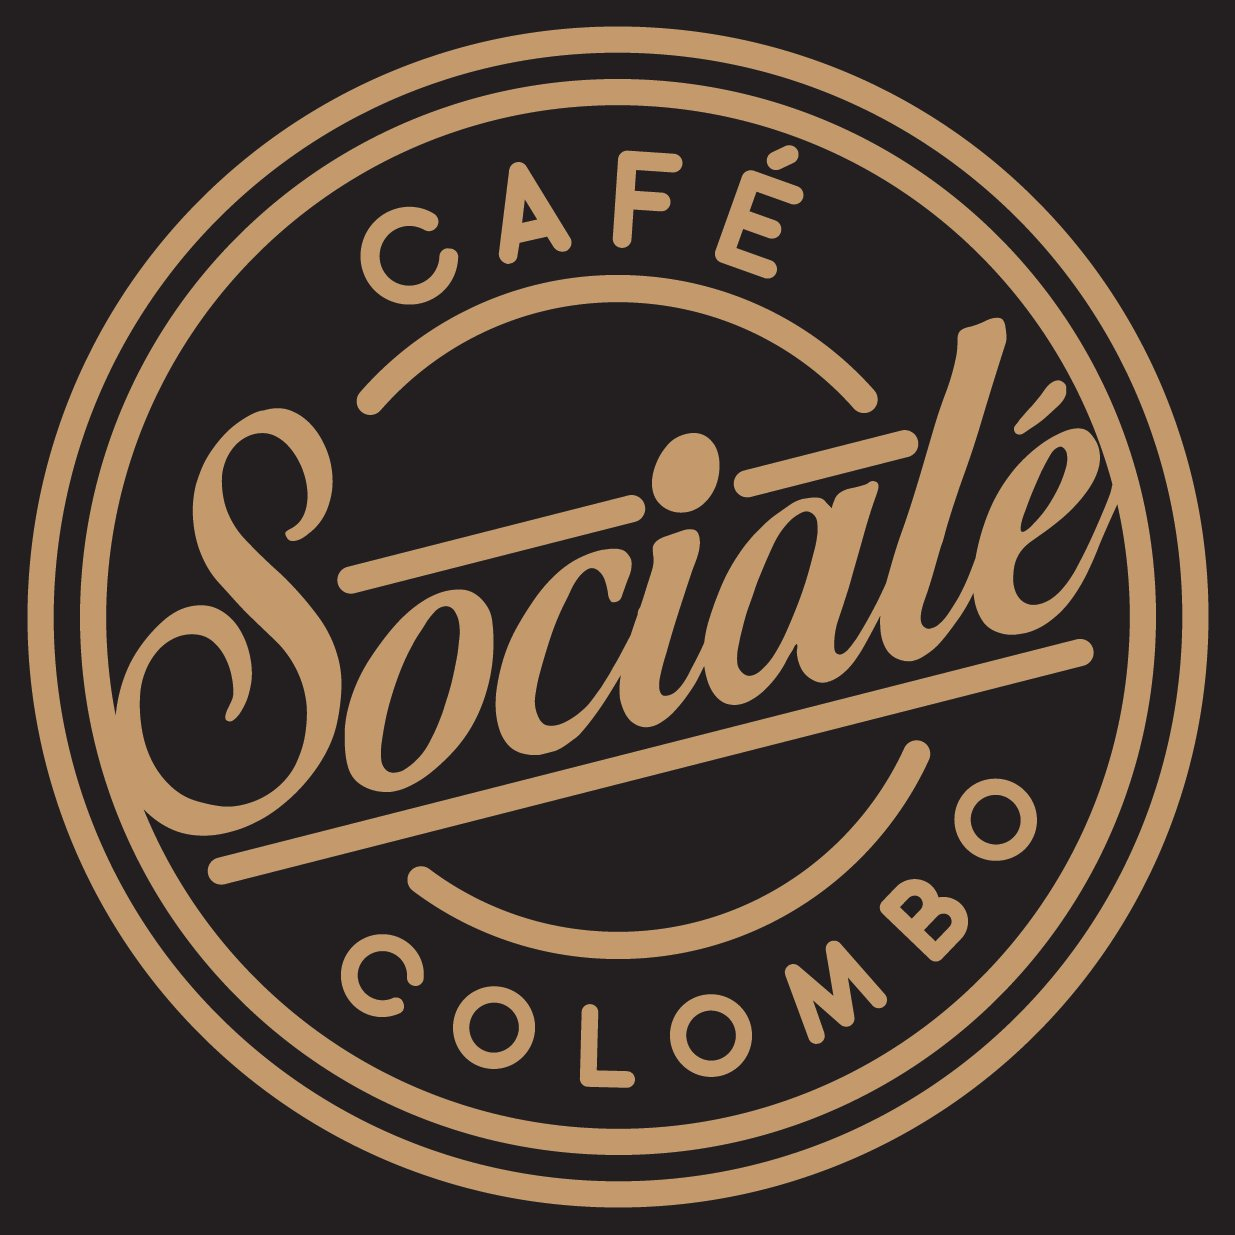 @cafesocialecmb